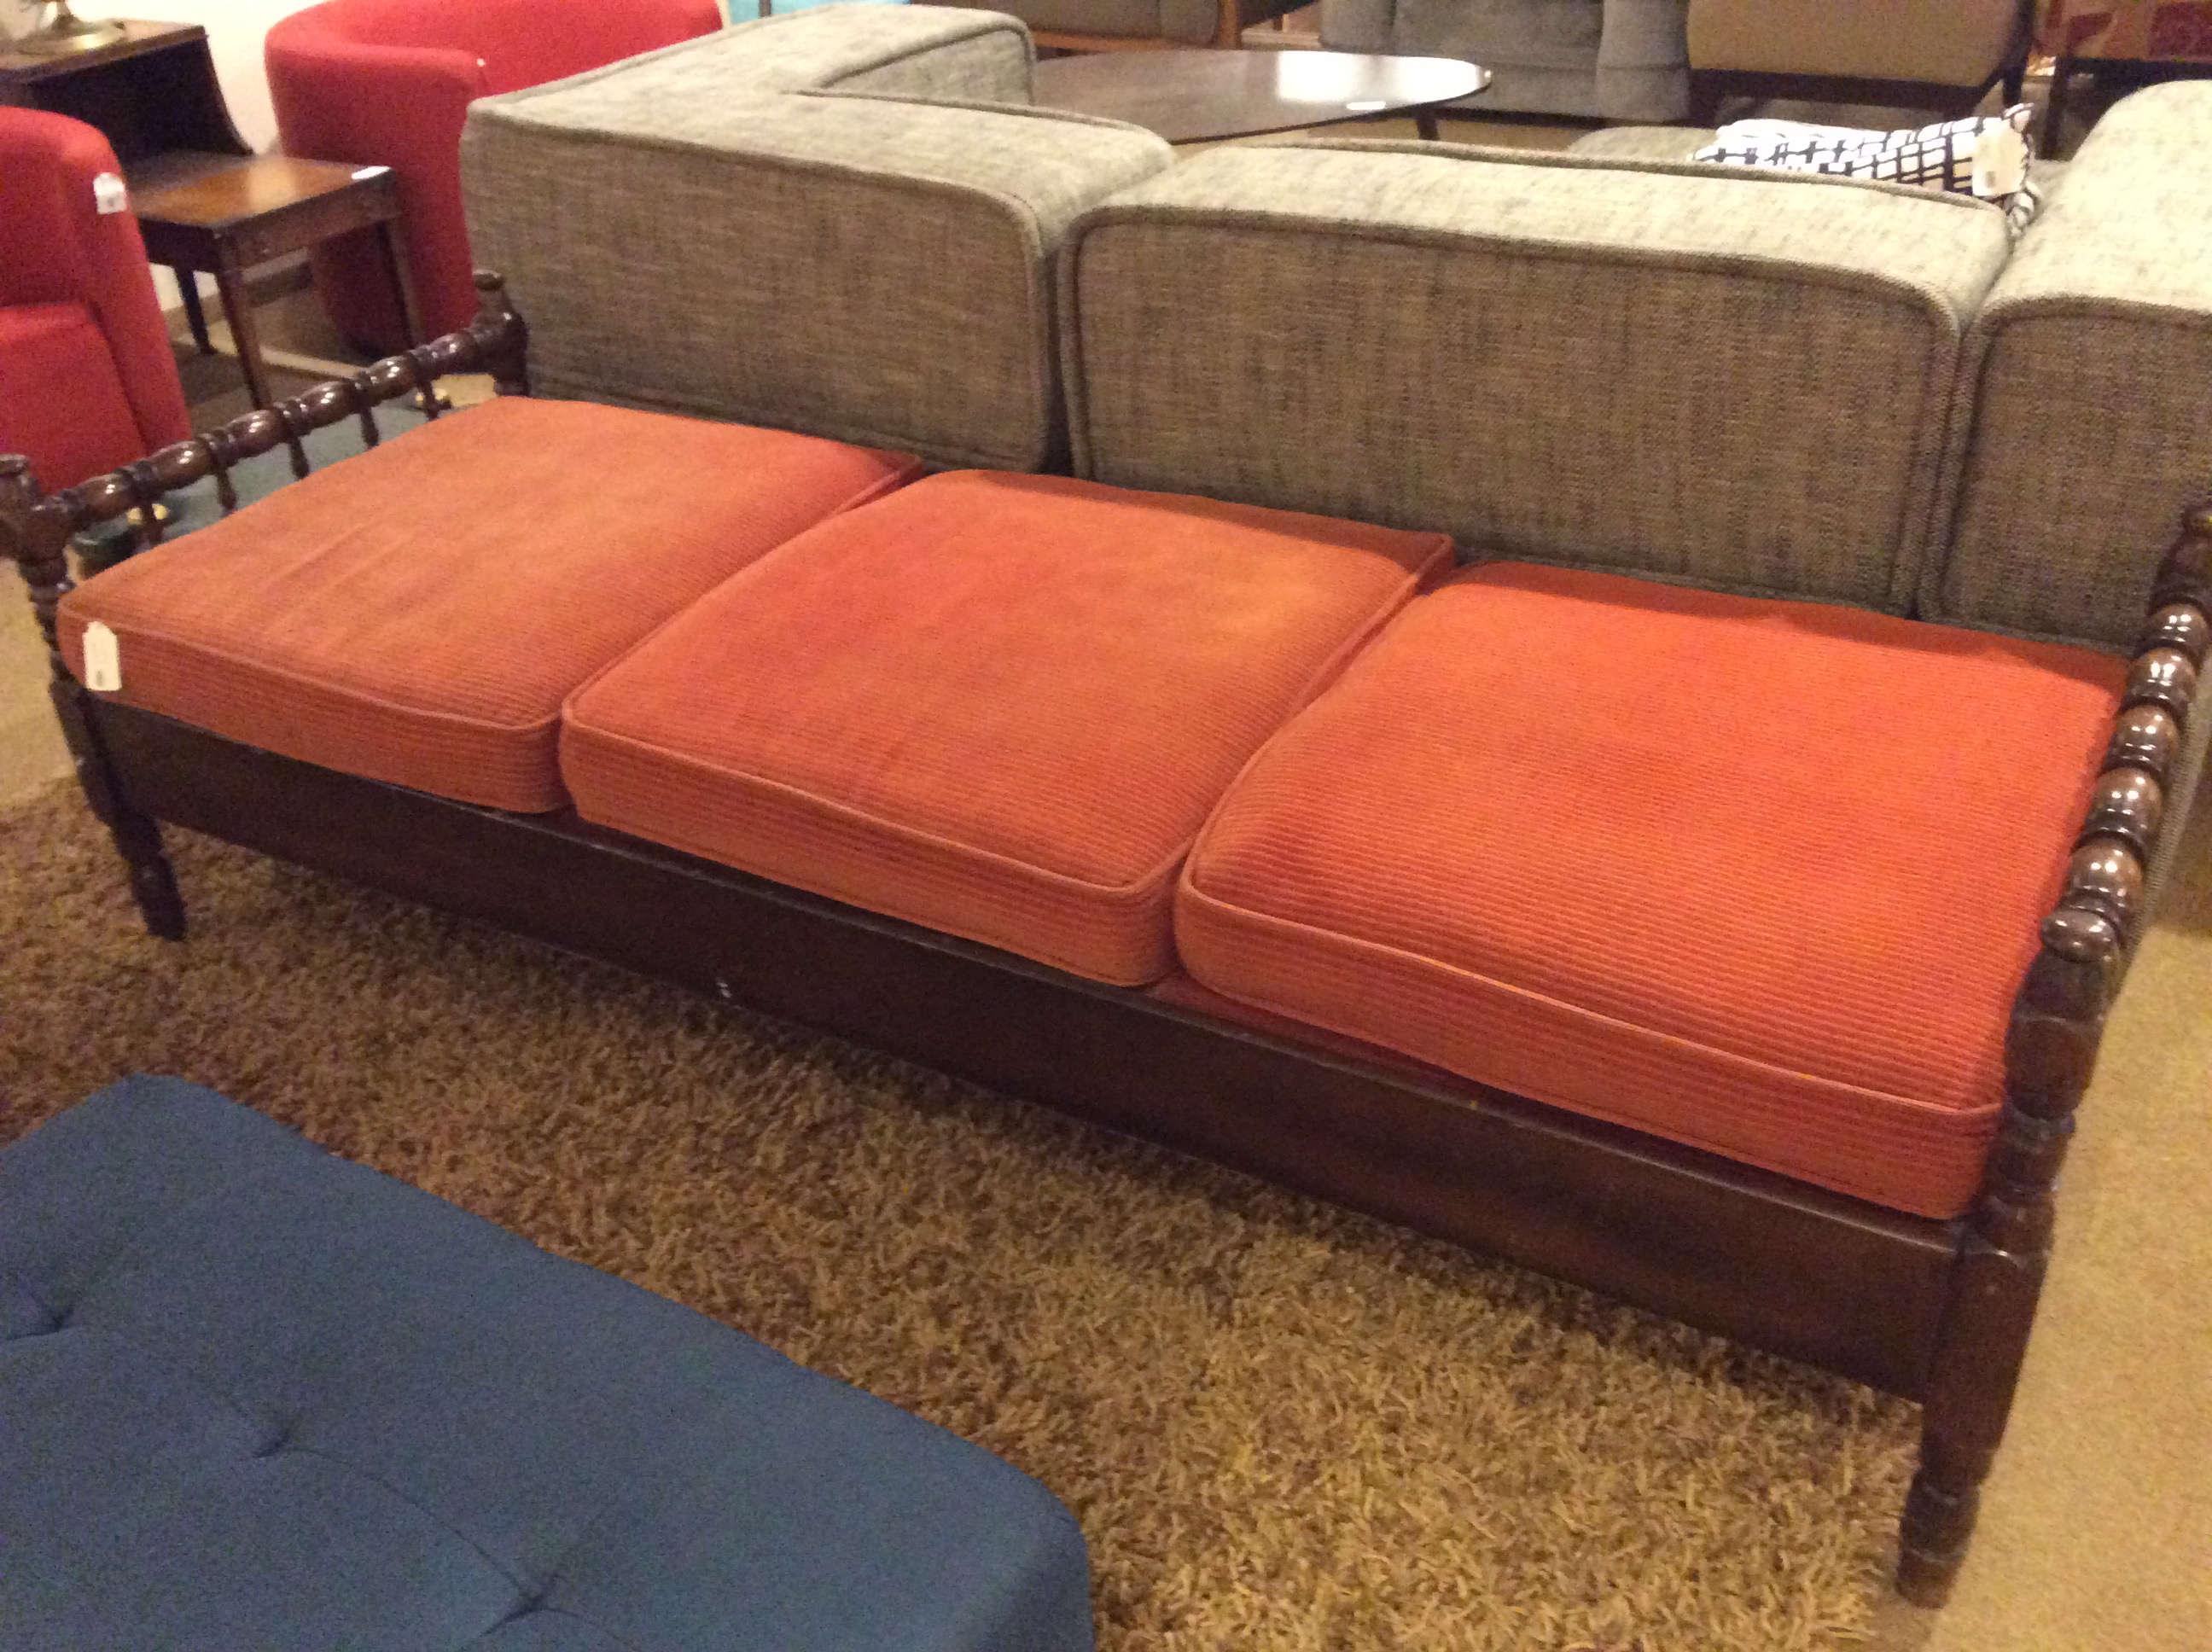 Vintage Daybed vintage daybed sold – ballard consignment